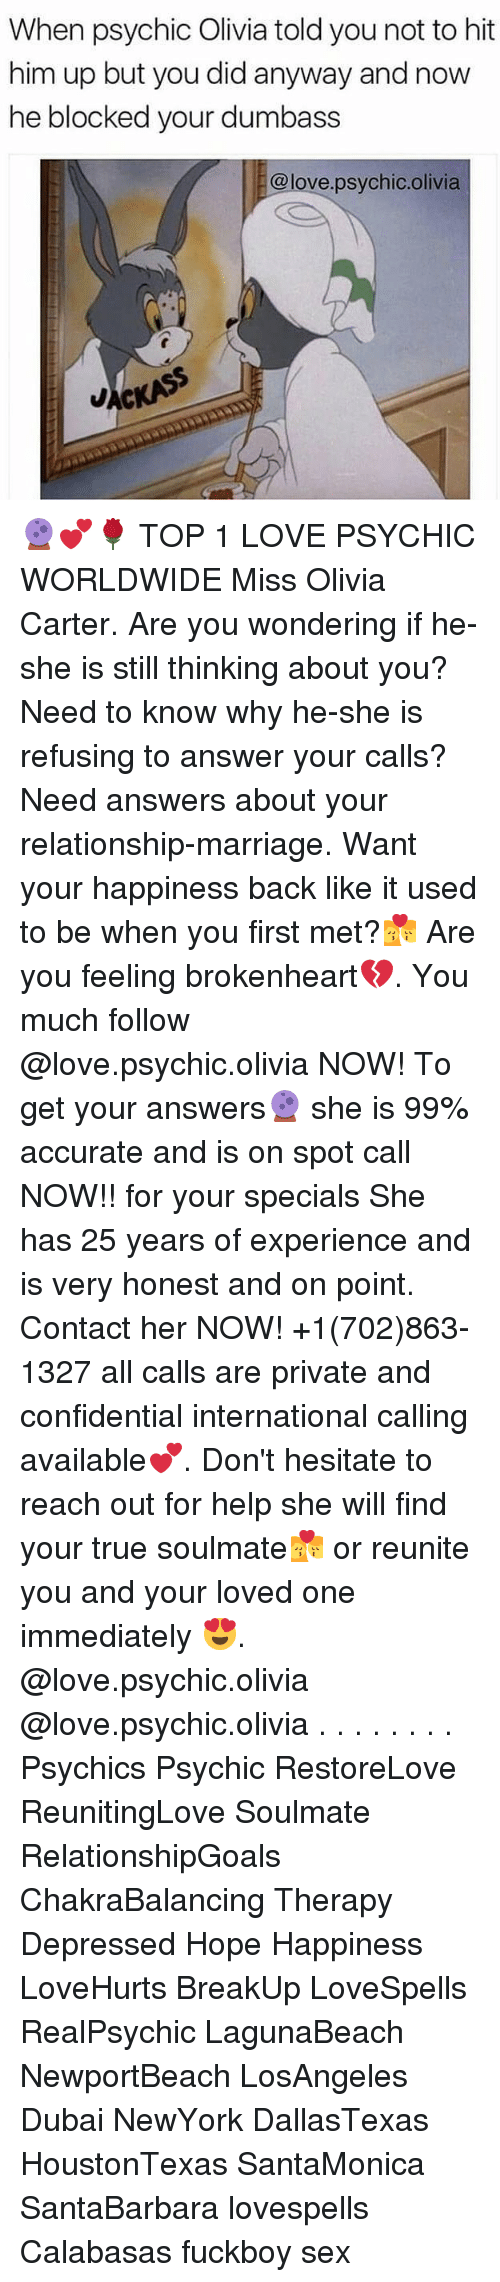 brokenheart: When psychic Olivia told you not to hit  him up but you did anyway and now  he blocked your dumbass  @love.psychic.olivia 🔮💕🌹 TOP 1 LOVE PSYCHIC WORLDWIDE Miss Olivia Carter. Are you wondering if he-she is still thinking about you? Need to know why he-she is refusing to answer your calls? Need answers about your relationship-marriage. Want your happiness back like it used to be when you first met?💏 Are you feeling brokenheart💔. You much follow @love.psychic.olivia NOW! To get your answers🔮 she is 99% accurate and is on spot call NOW!! for your specials She has 25 years of experience and is very honest and on point. Contact her NOW! +1(702)863-1327 all calls are private and confidential international calling available💕. Don't hesitate to reach out for help she will find your true soulmate💏 or reunite you and your loved one immediately 😍. @love.psychic.olivia @love.psychic.olivia . . . . . . . . Psychics Psychic RestoreLove ReunitingLove Soulmate RelationshipGoals ChakraBalancing Therapy Depressed Hope Happiness LoveHurts BreakUp LoveSpells RealPsychic LagunaBeach NewportBeach LosAngeles Dubai NewYork DallasTexas HoustonTexas SantaMonica SantaBarbara lovespells Calabasas fuckboy sex